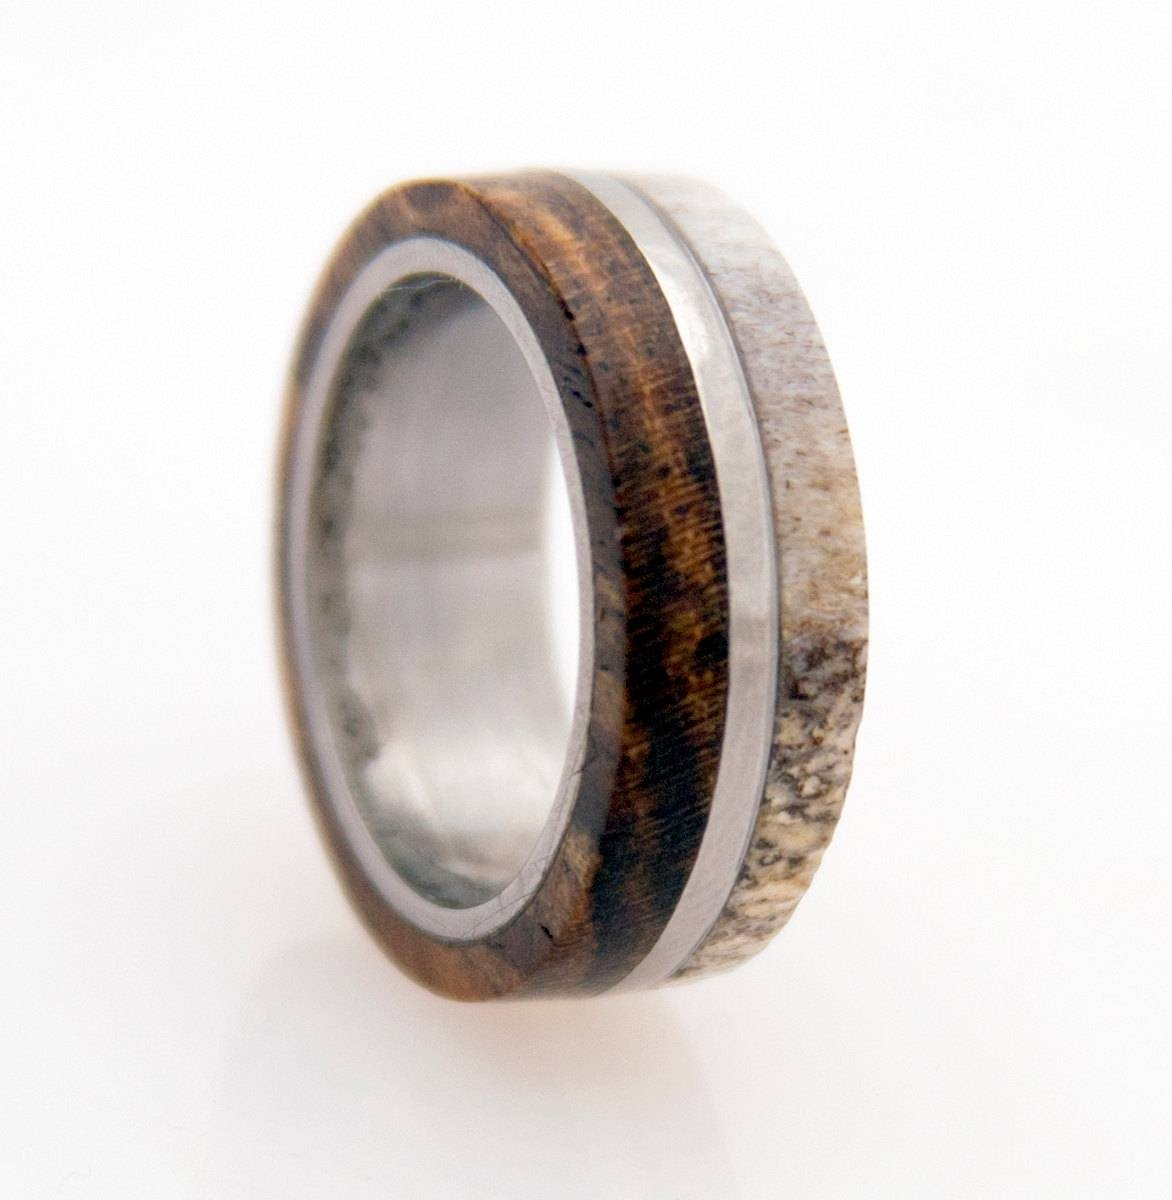 Antler Ring Titanium Ring With Wood Bocote Deer Antler Band With Mens Wedding Bands With Deer Antlers (View 3 of 15)